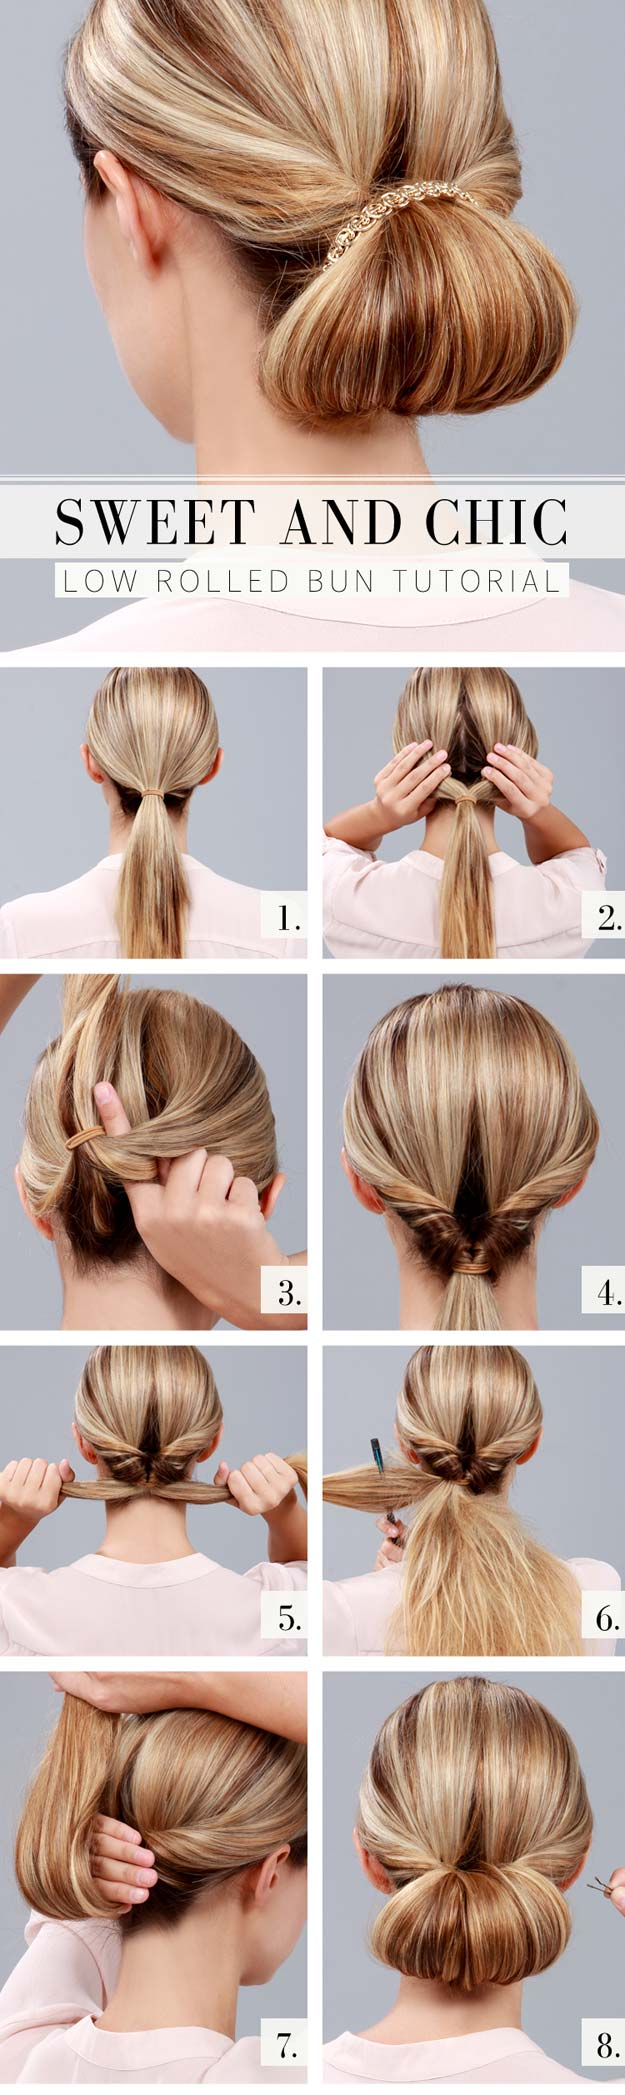 Best Hairstyles for Long Hair - Chic Low Rolled Bun- Step by Step Tutorials for Easy Curls, Updo, Half Up, Braids and Lazy Girl Looks. Prom Ideas, Special Occasion Hair and Braiding Instructions for Teens, Teenagers and Adults, Women and Girls http://diyprojectsforteens.com/best-hairstyles-long-hair